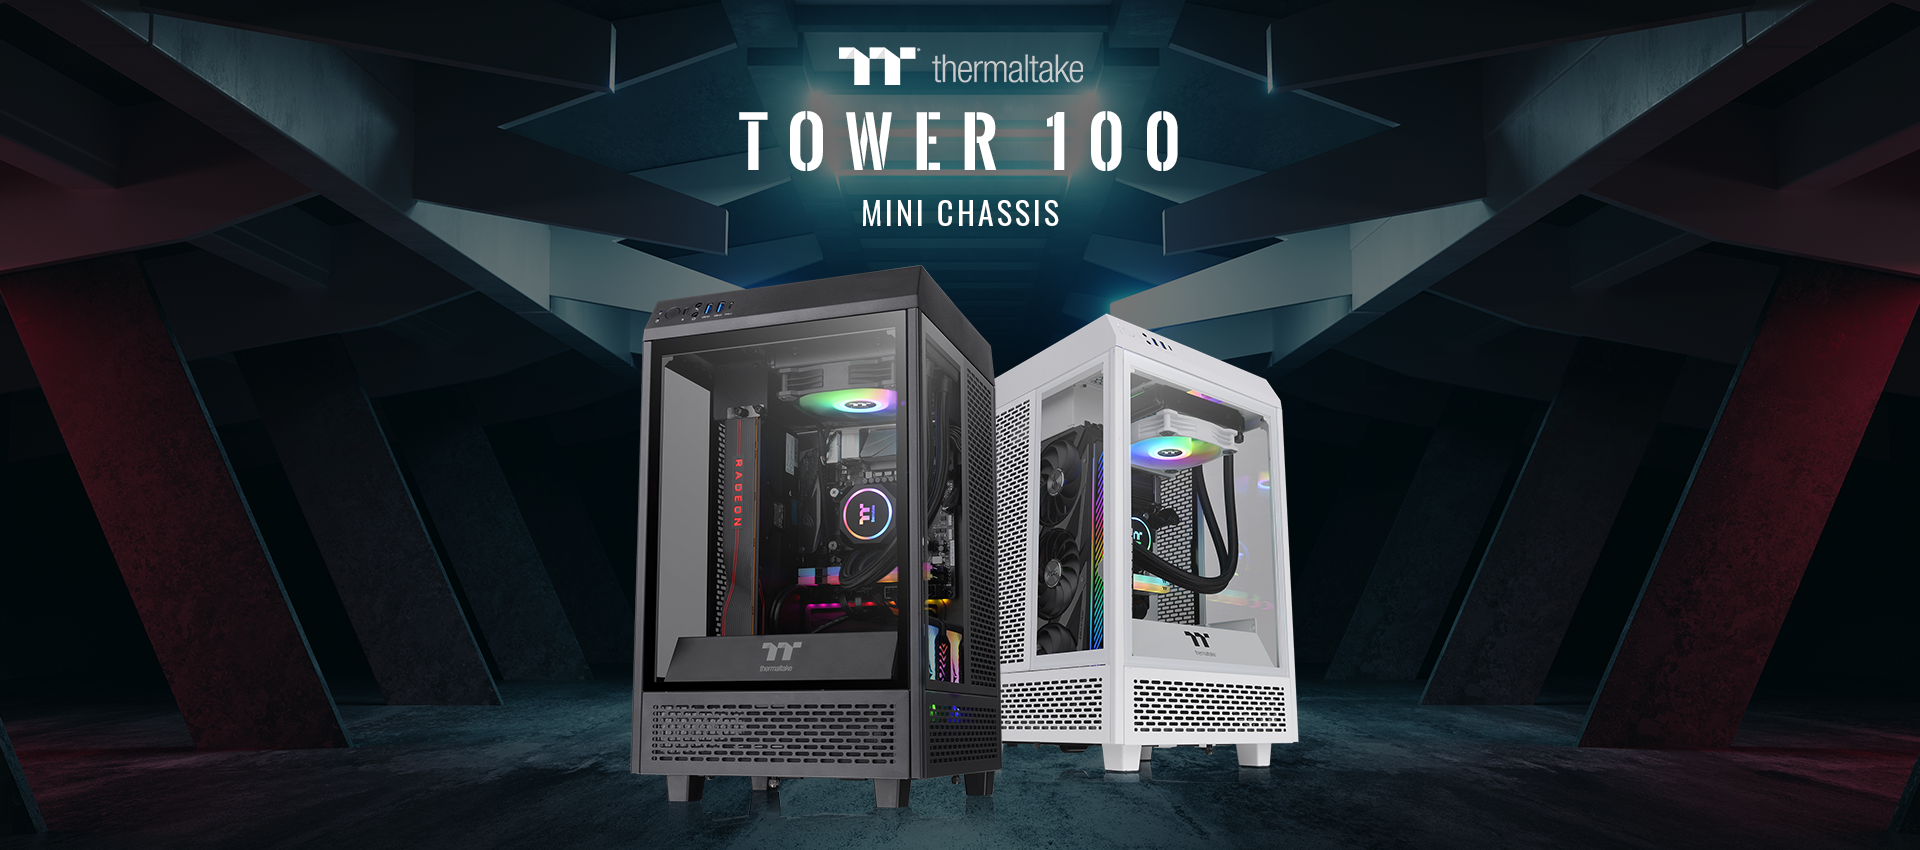 The Tower 100 Mini Chassis